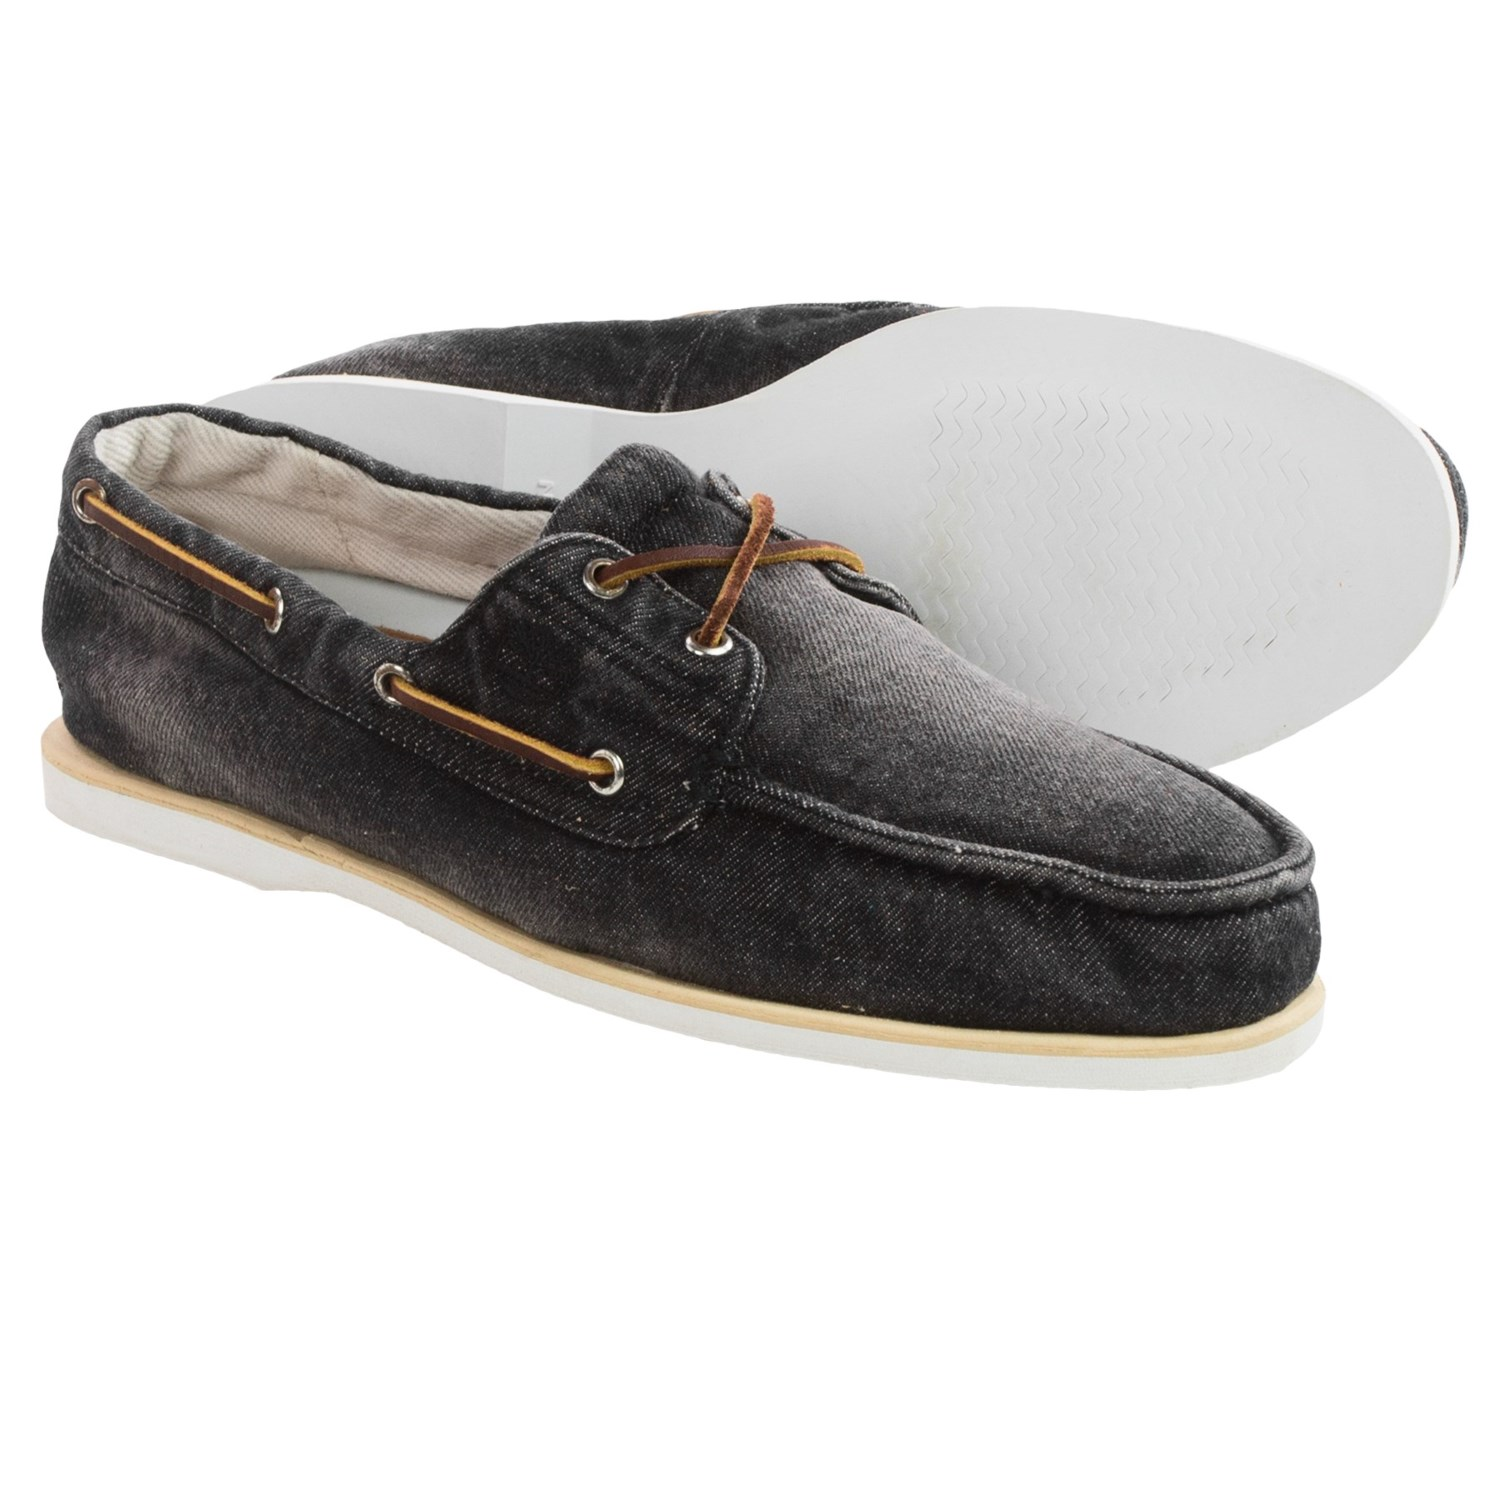 Timberland Classic Denim Boat Shoes (For Men) 128GK - Save 74%